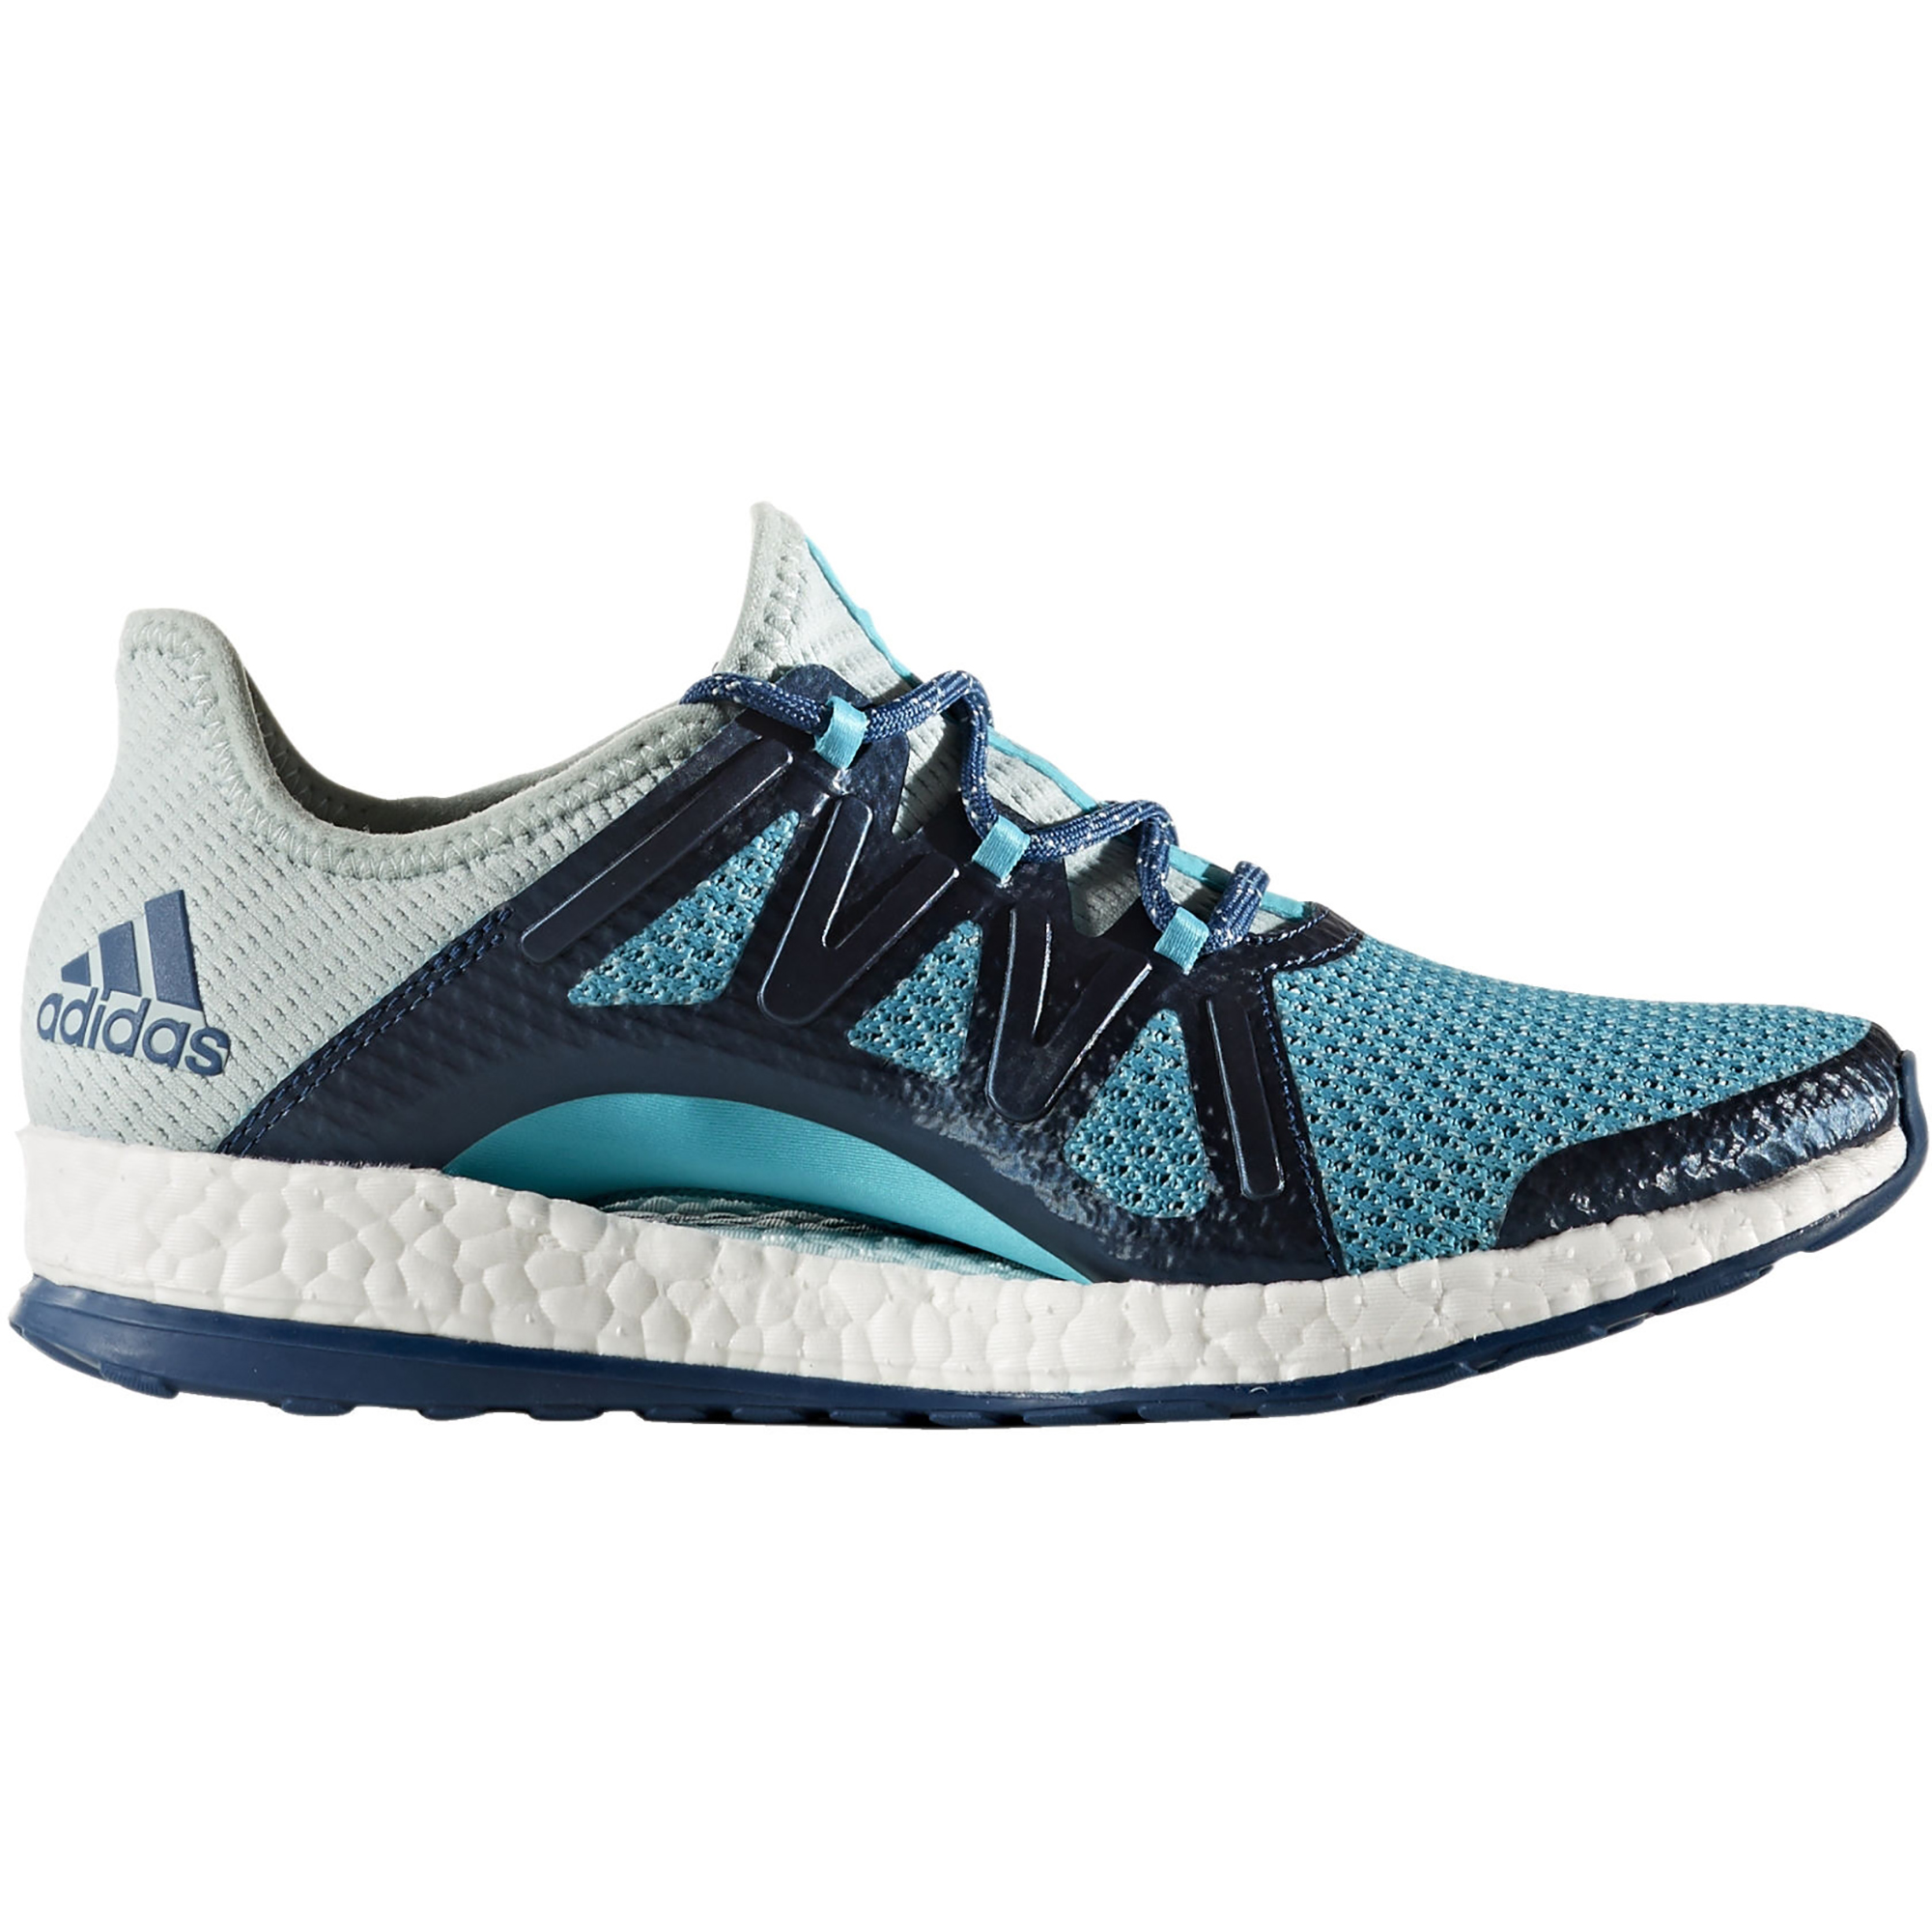 064f50462 ... germany adidas womens pure boost xpose shoes 63d91 3948b